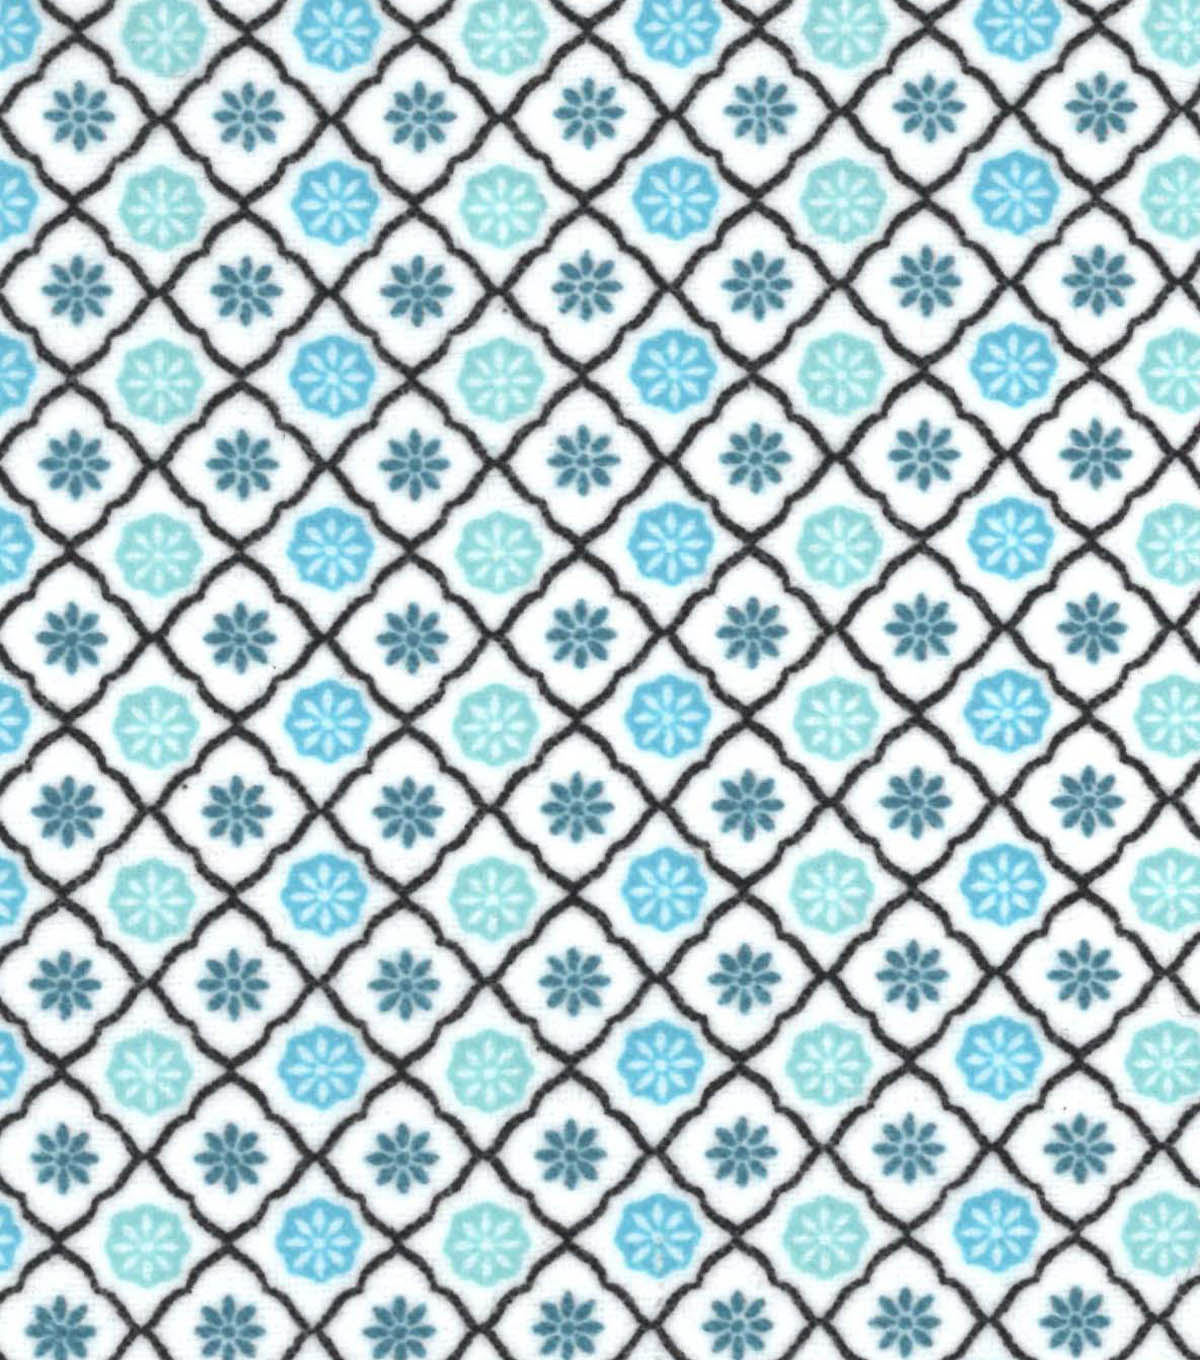 Snuggle Flannel Fabric -Peacock Trellis Geo